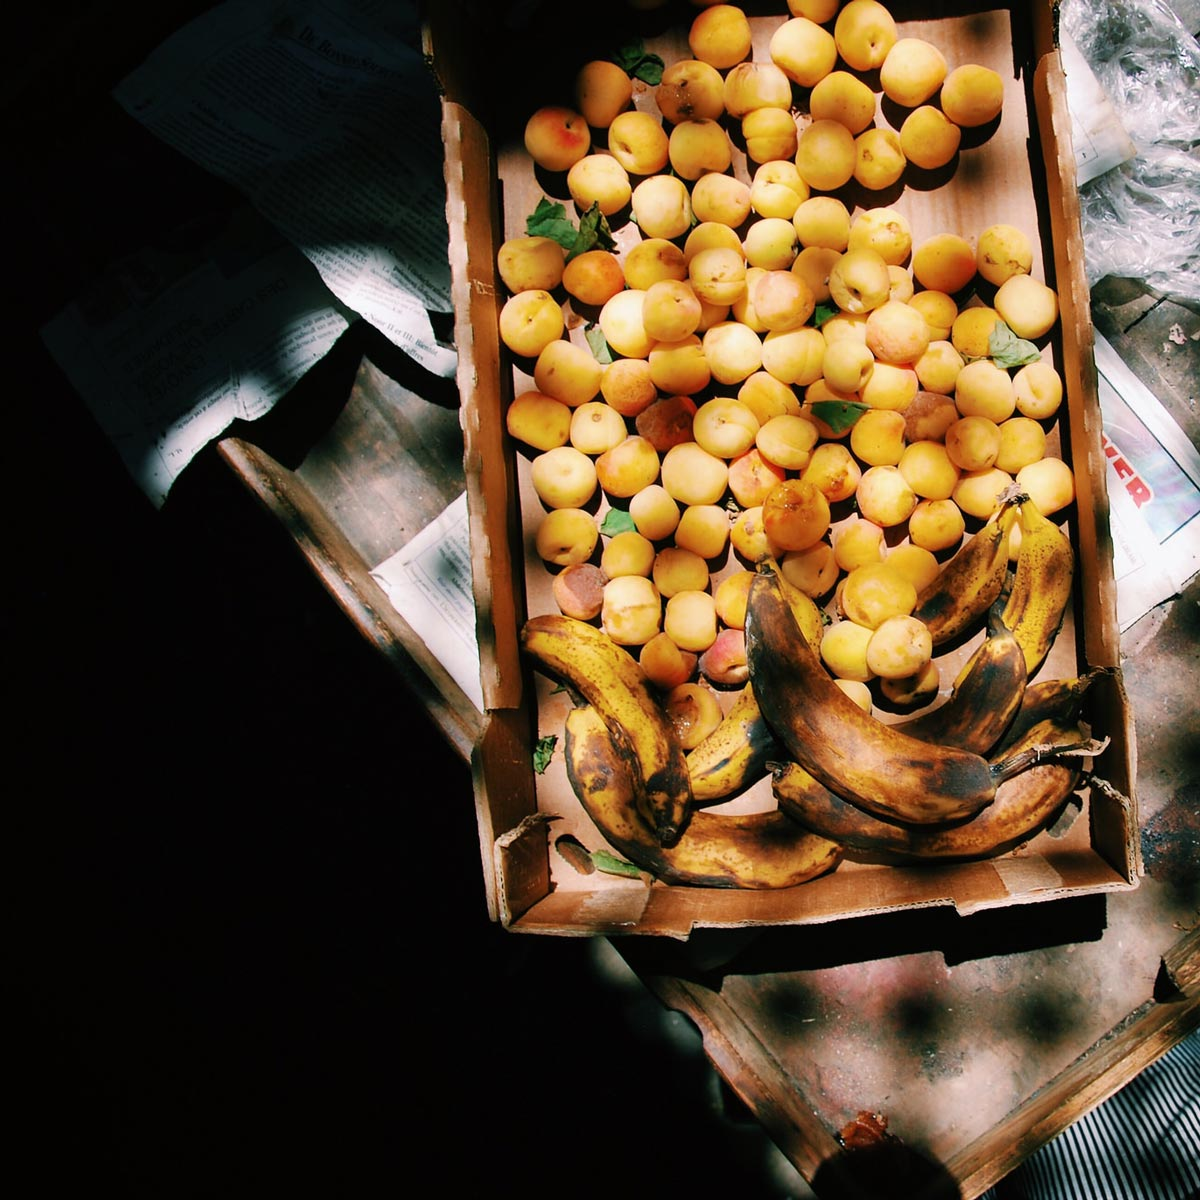 Fruit in a large cardboard box